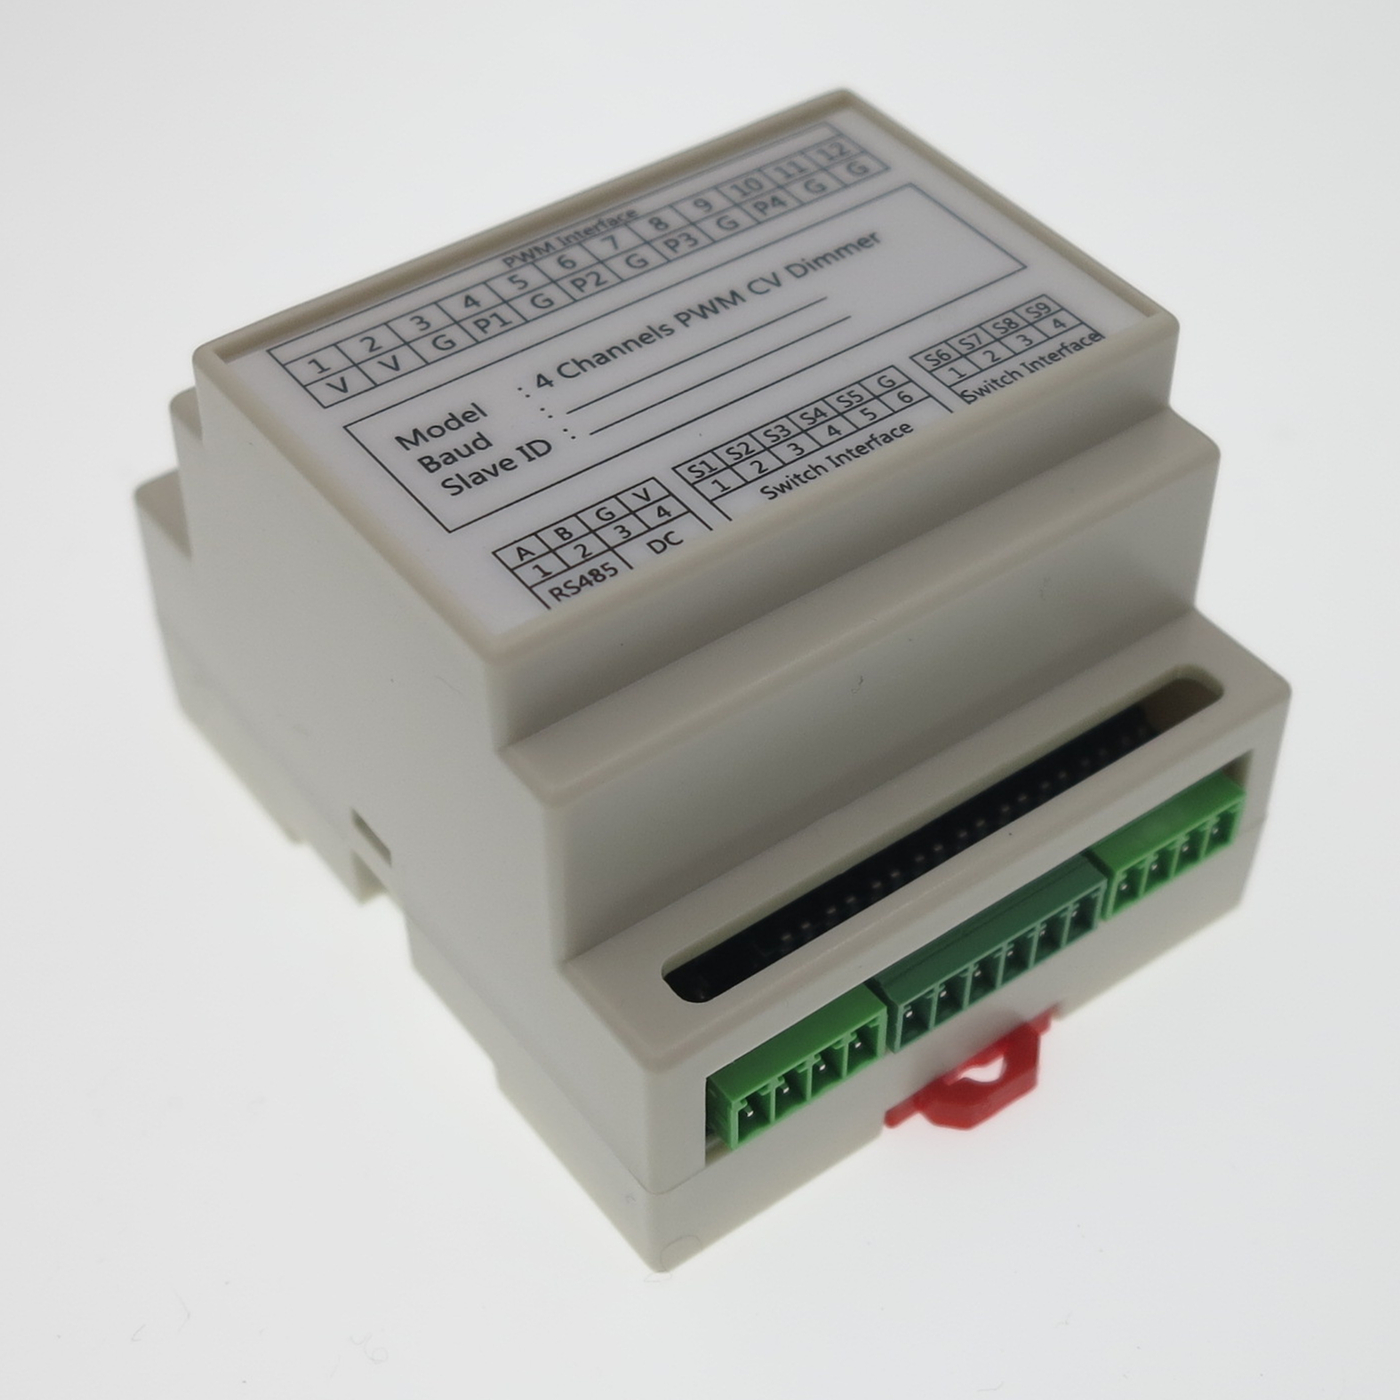 3 4 channels PWM CV Dimmer constant voltage high power LED dimming module with DI RS485